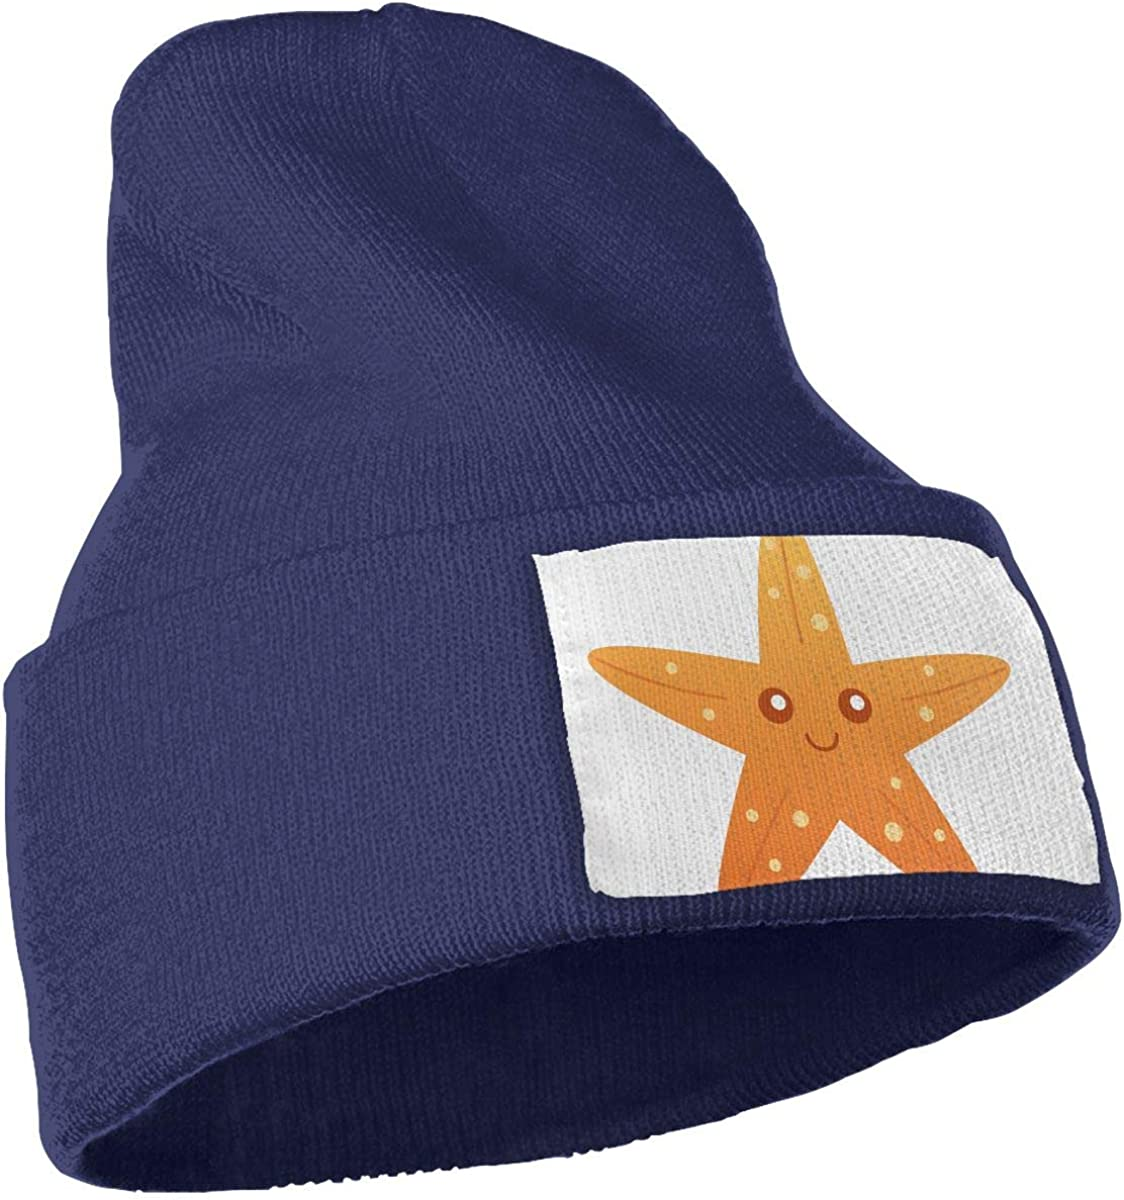 QZqDQ Cartoon Starfish Unisex Fashion Knitted Hat Luxury Hip-Hop Cap